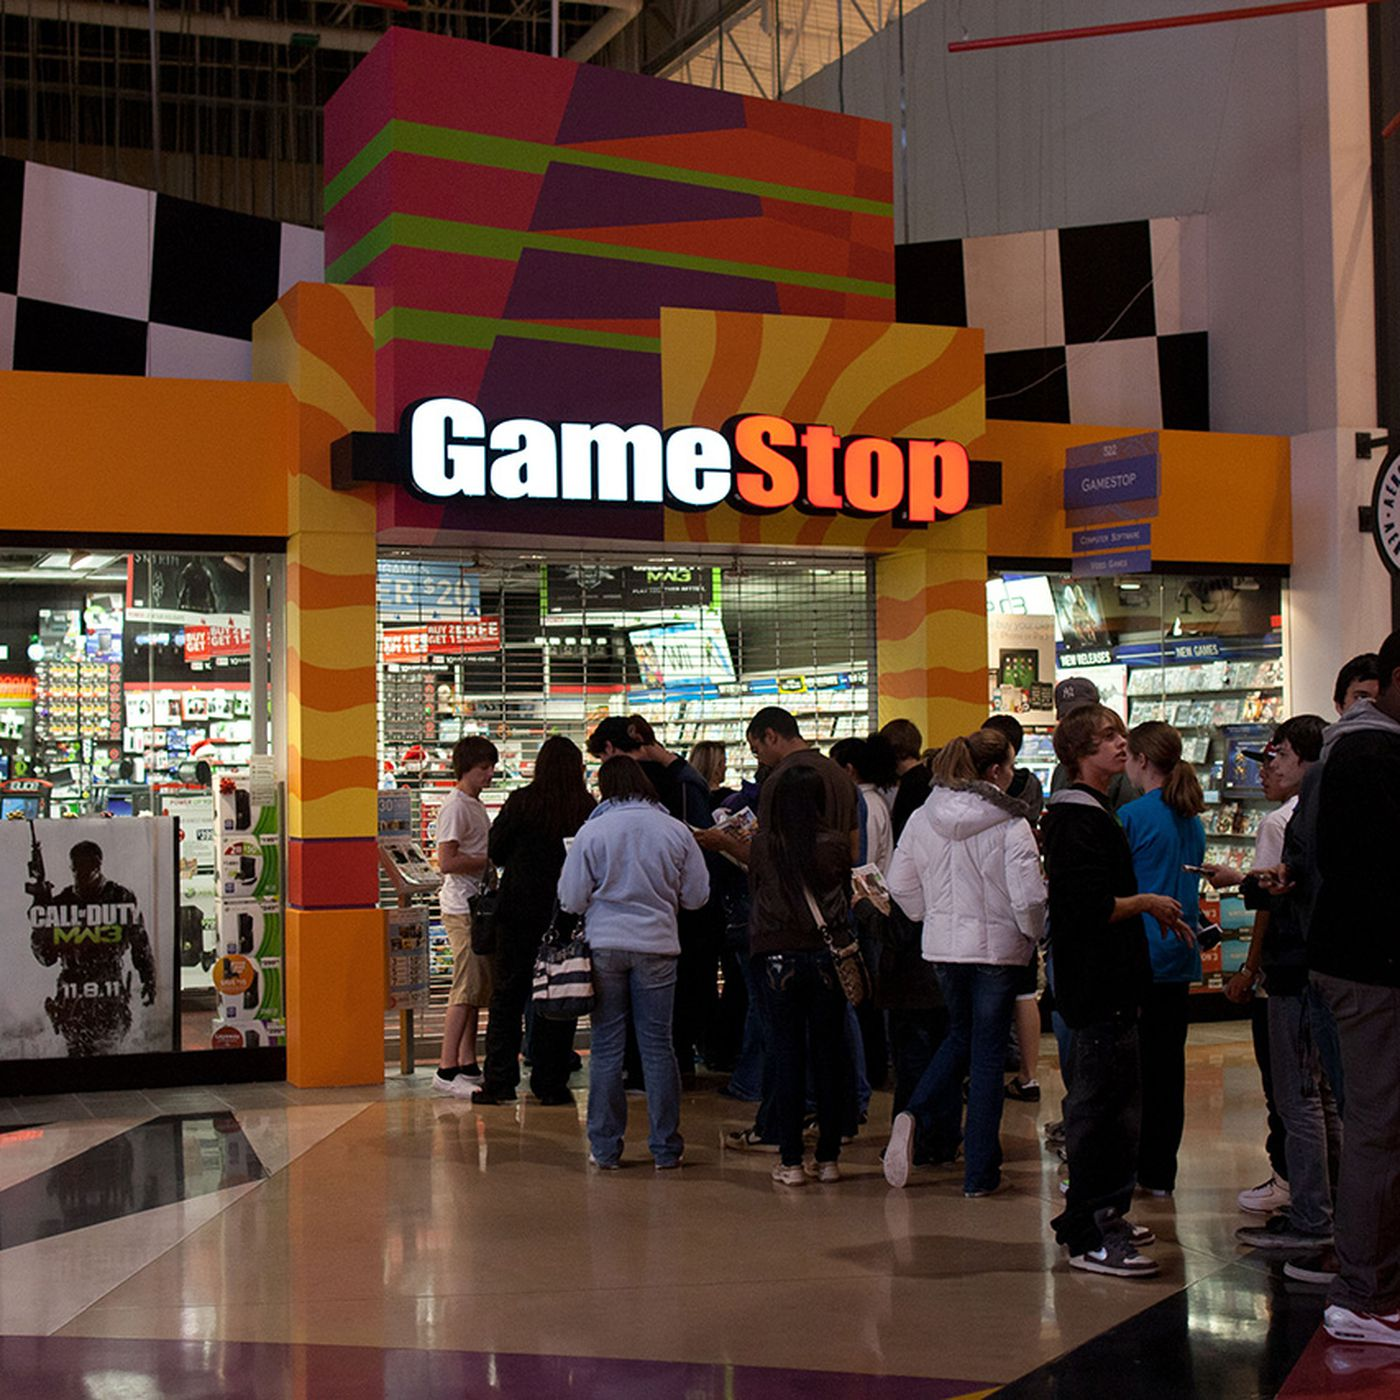 Gamestop Cyber Monday Deals Bring Back Black Friday Offers Polygon